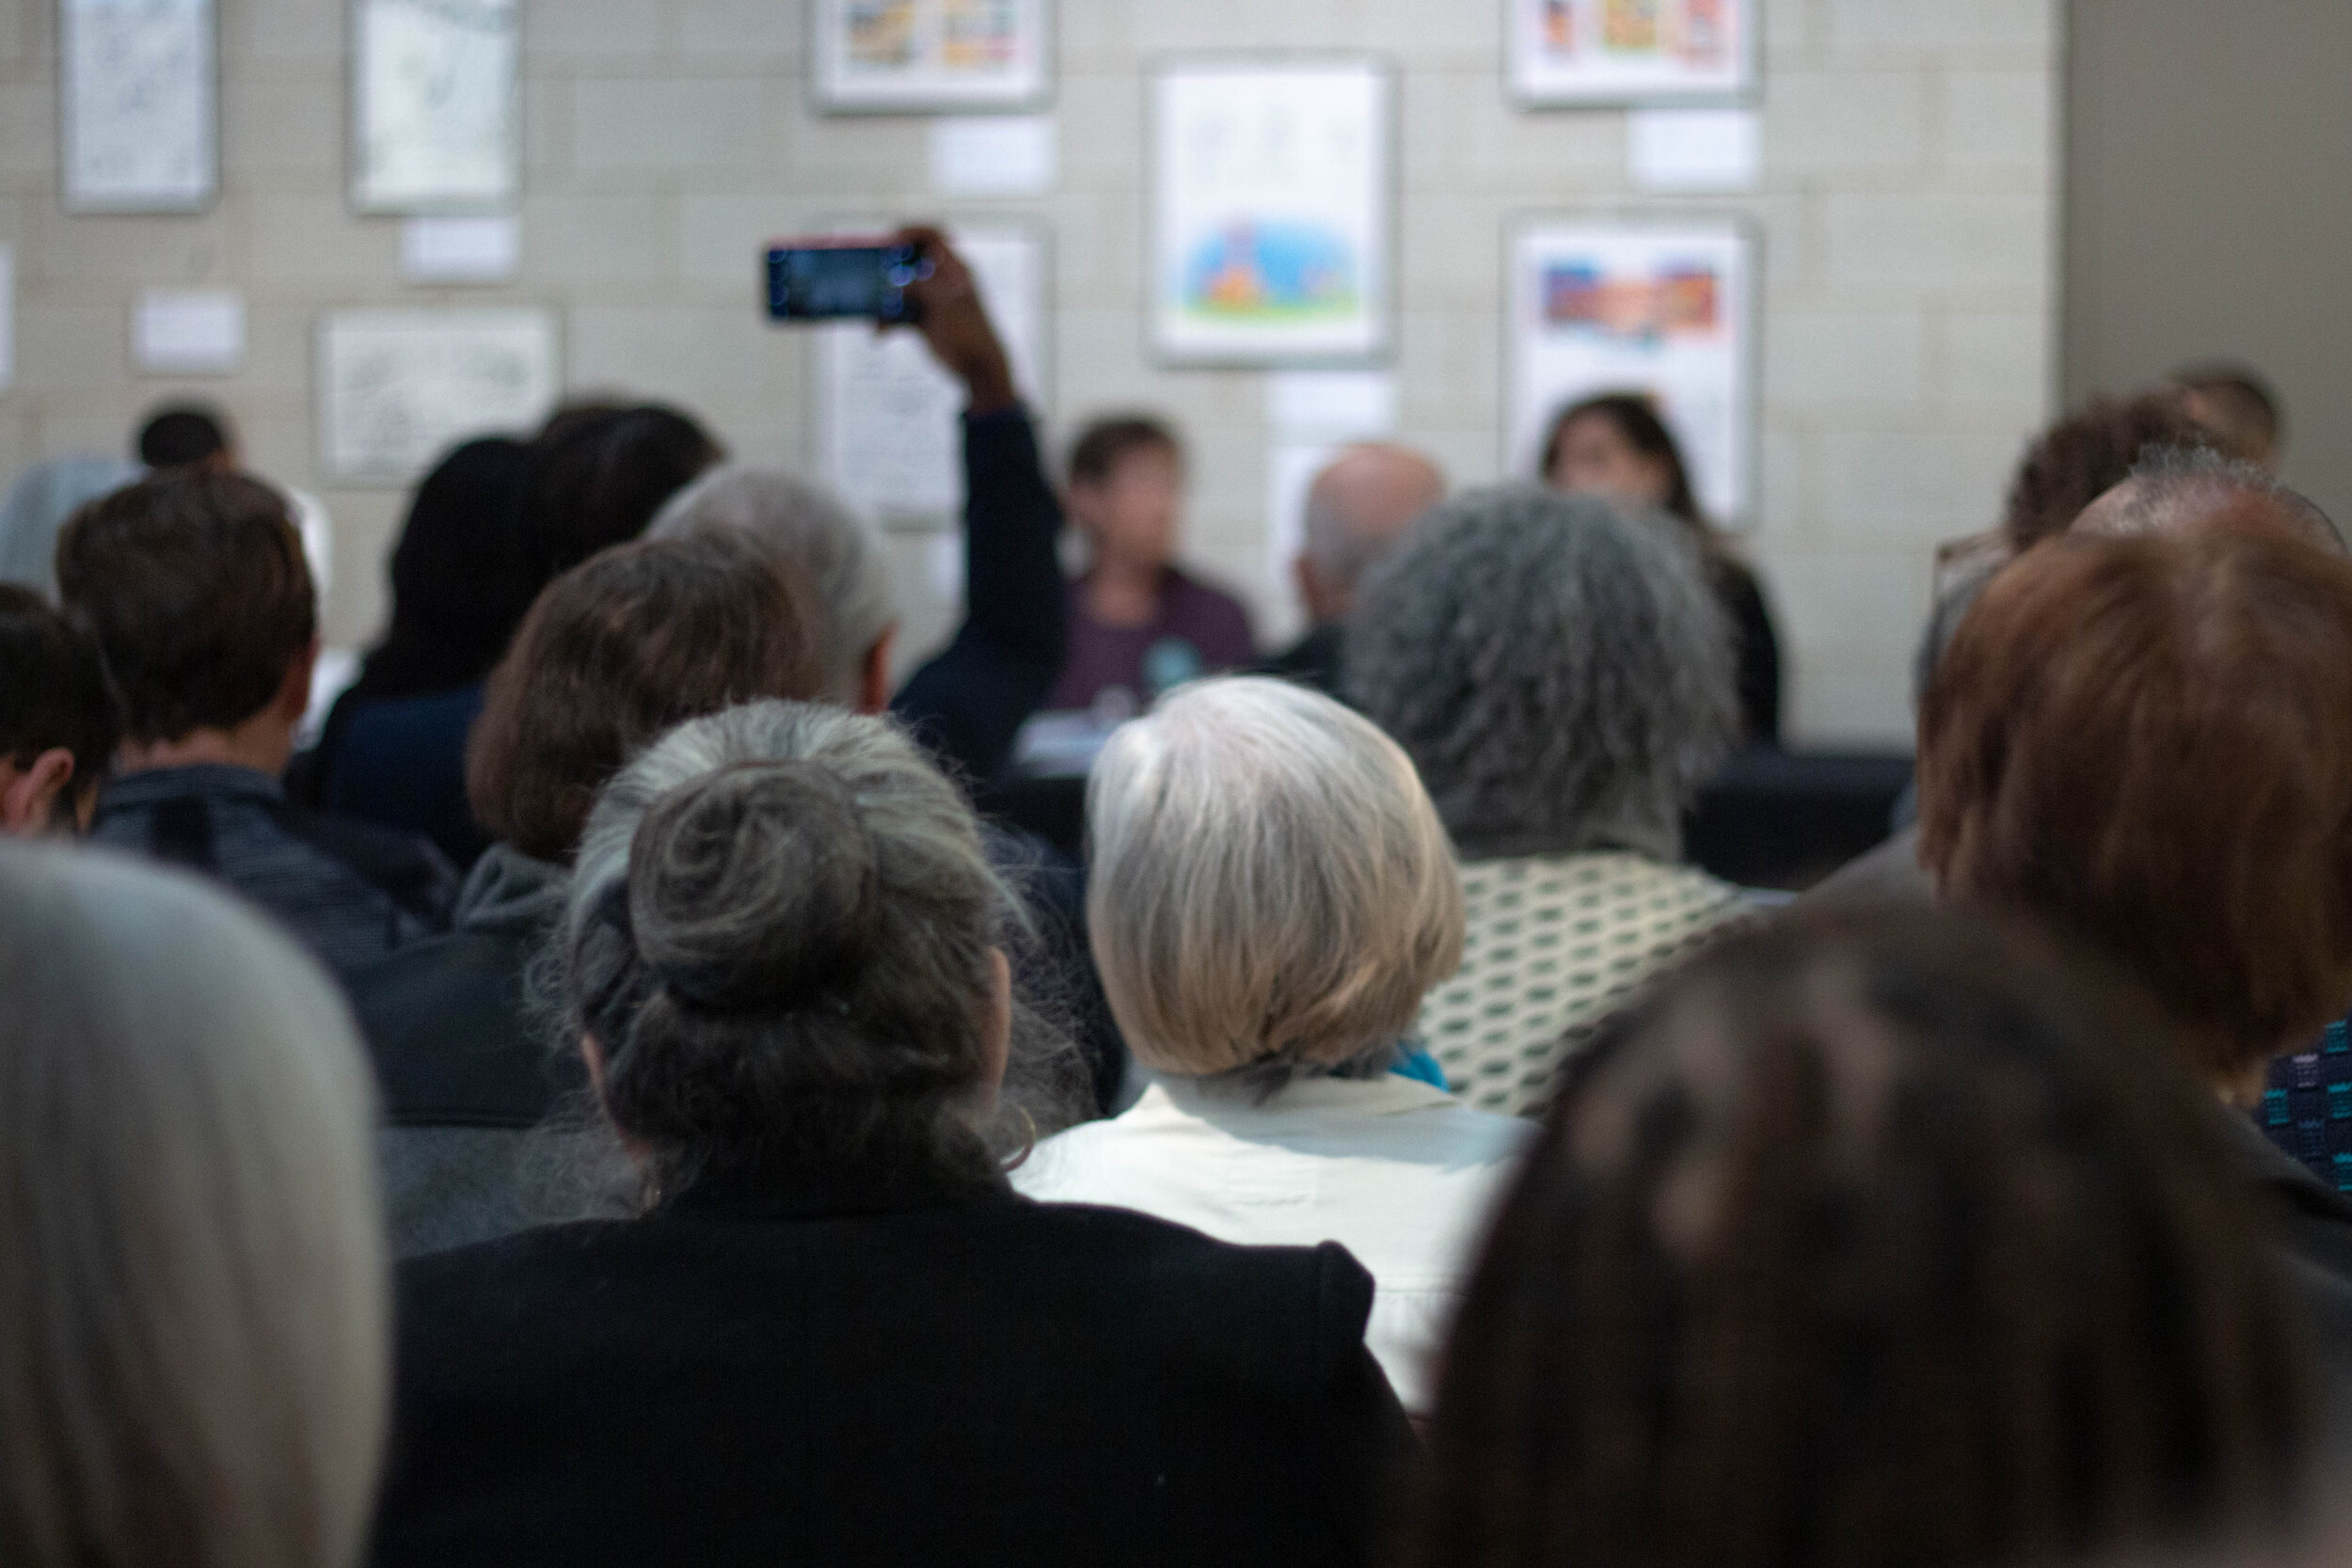 A crowd of of mostly middle aged people filled the empty seats of the Simmerling Gallery and listen to the panelist discuss the issues affecting their communities.